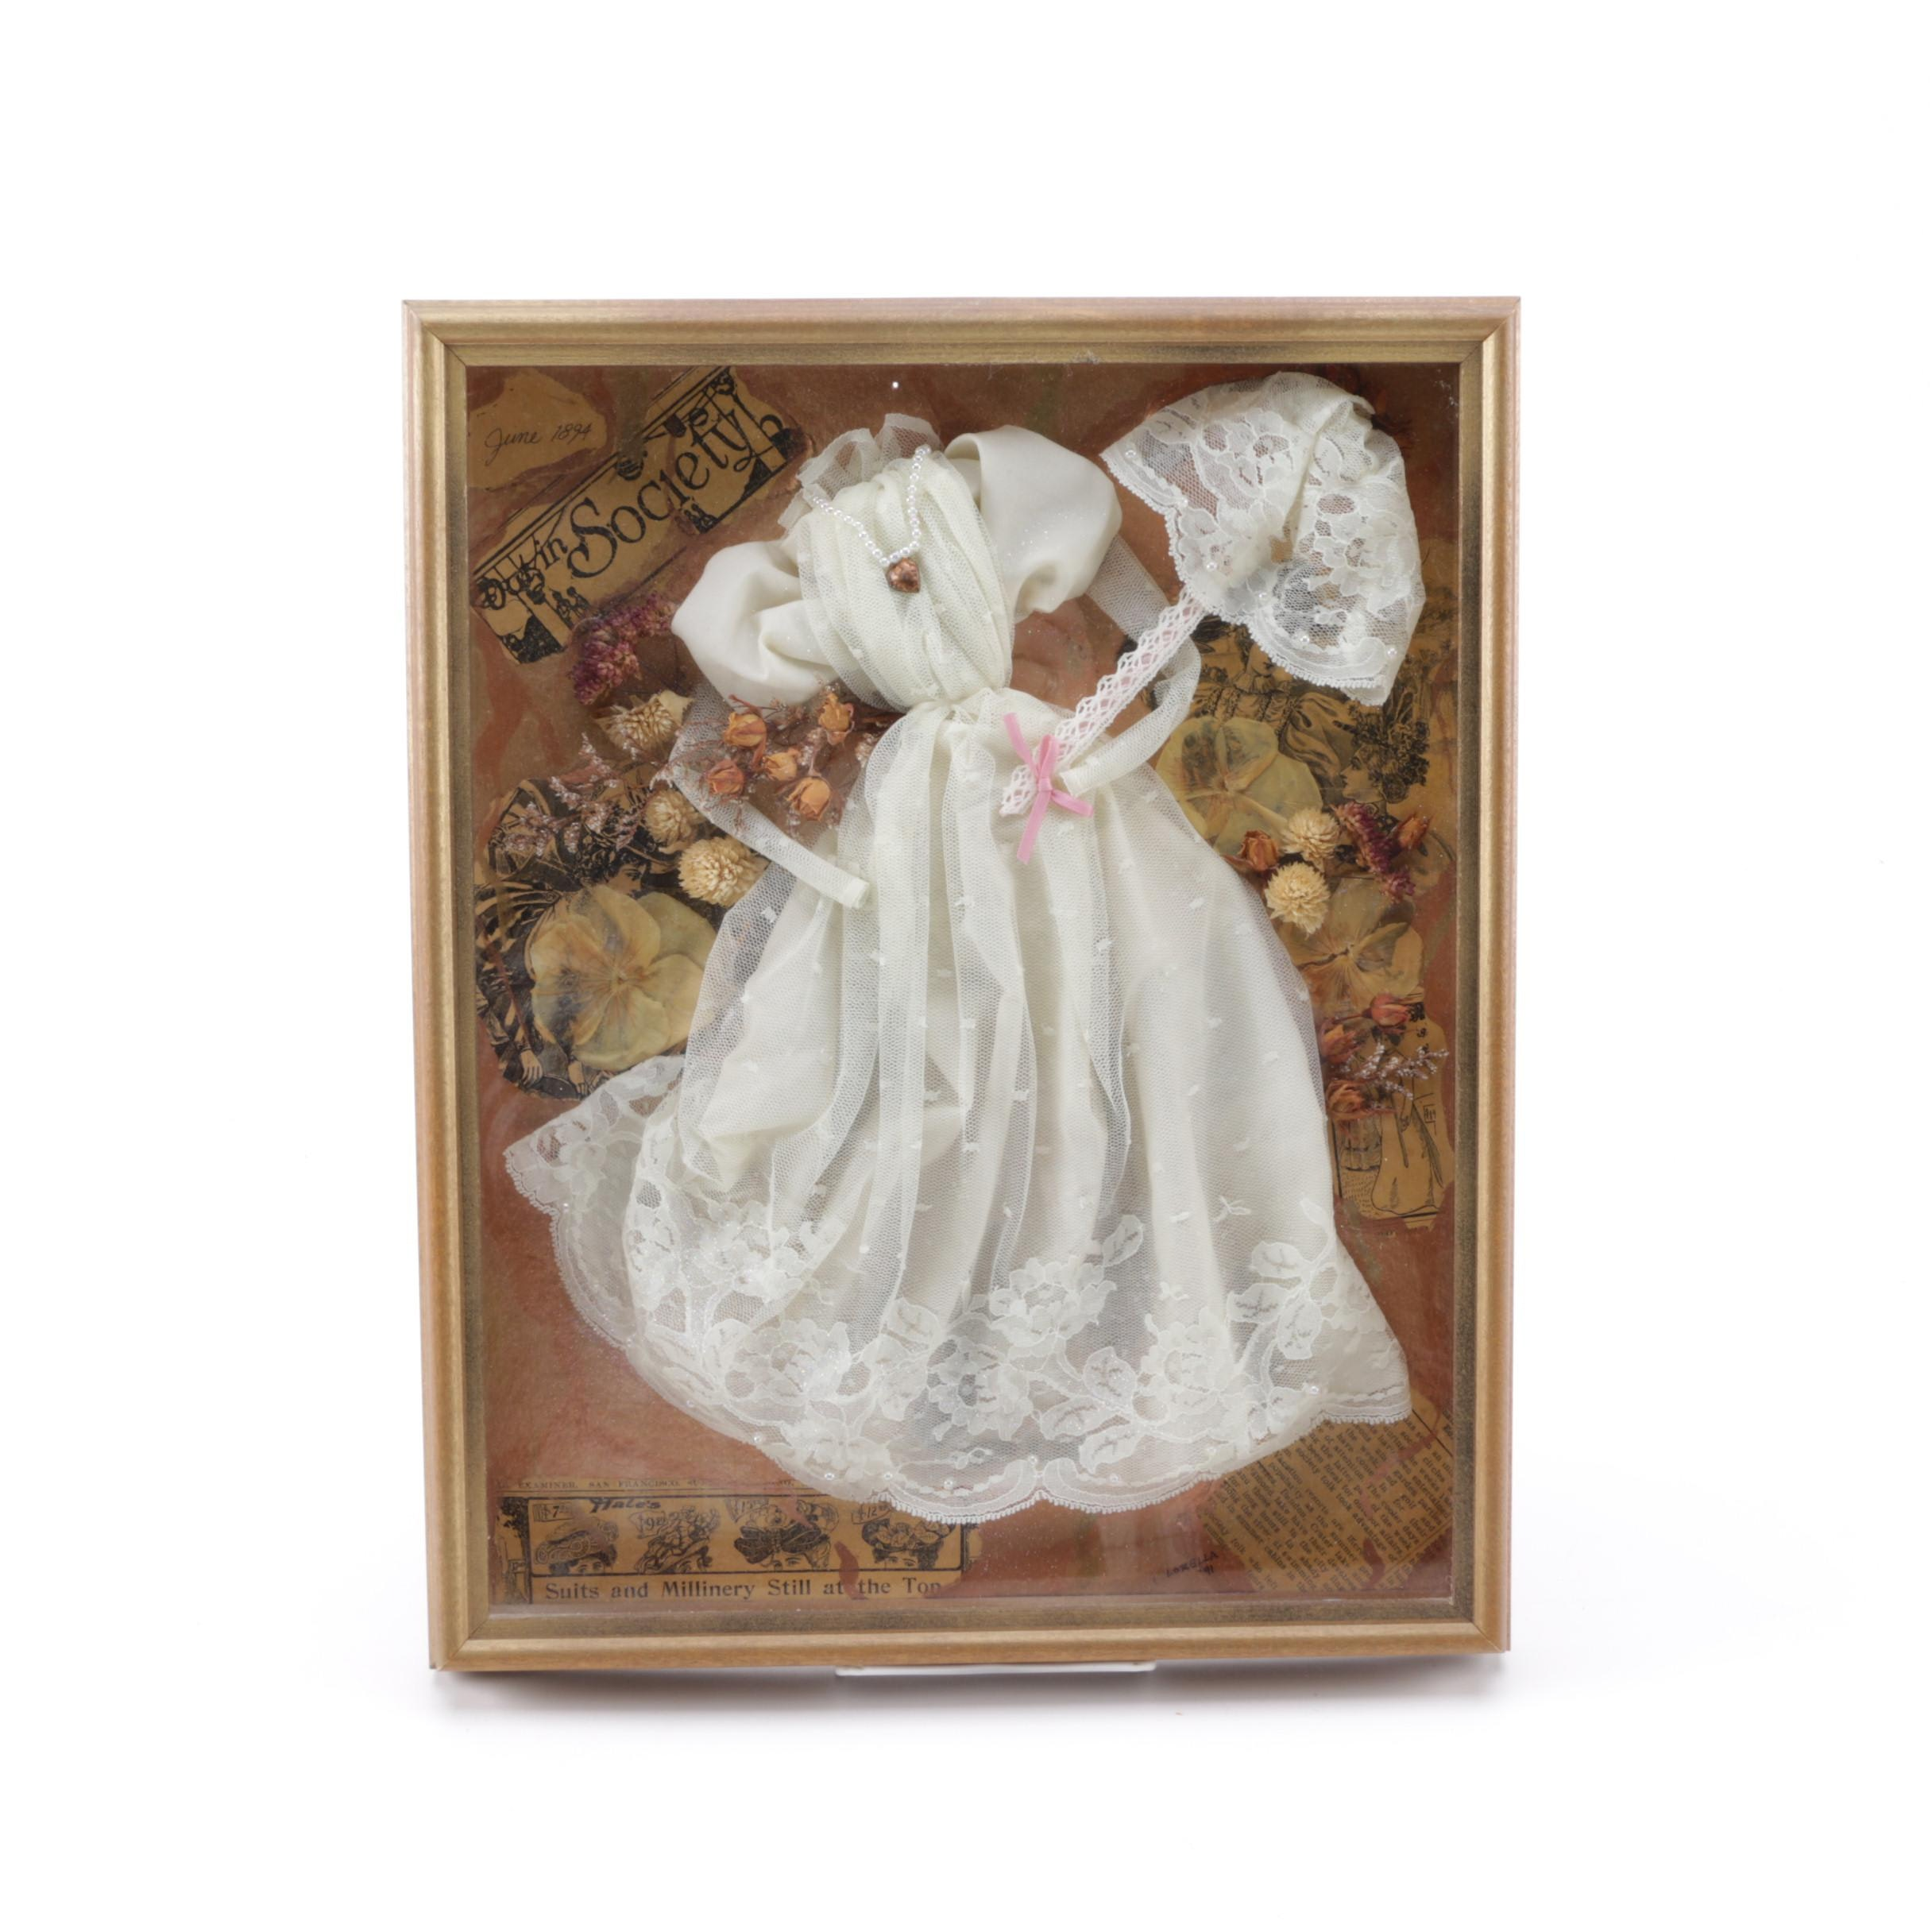 Shadowbox Framed Lorella Collections Miniature Victorian Clothing